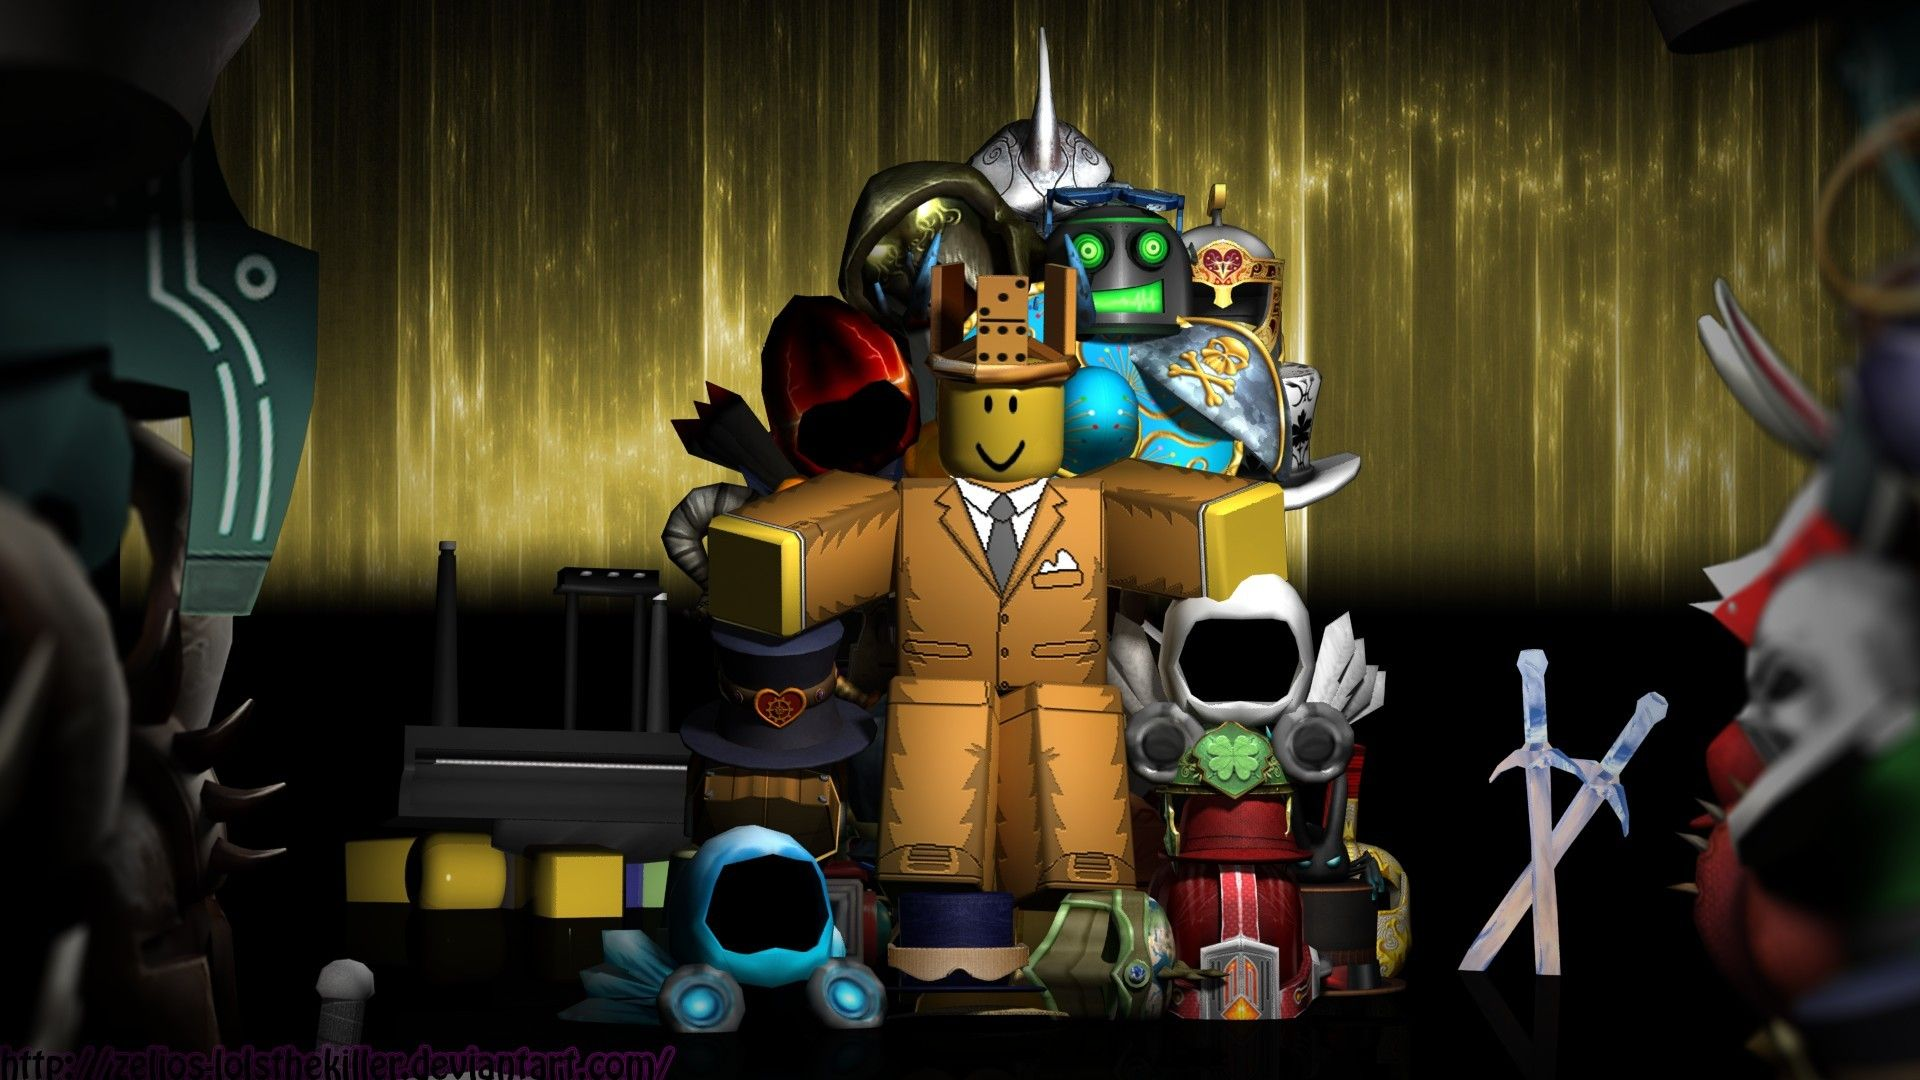 Roblox Background For Ipad Why You Should Not Go To Roblox Background For Ipad Roblox Magical Creature Cool Pictures